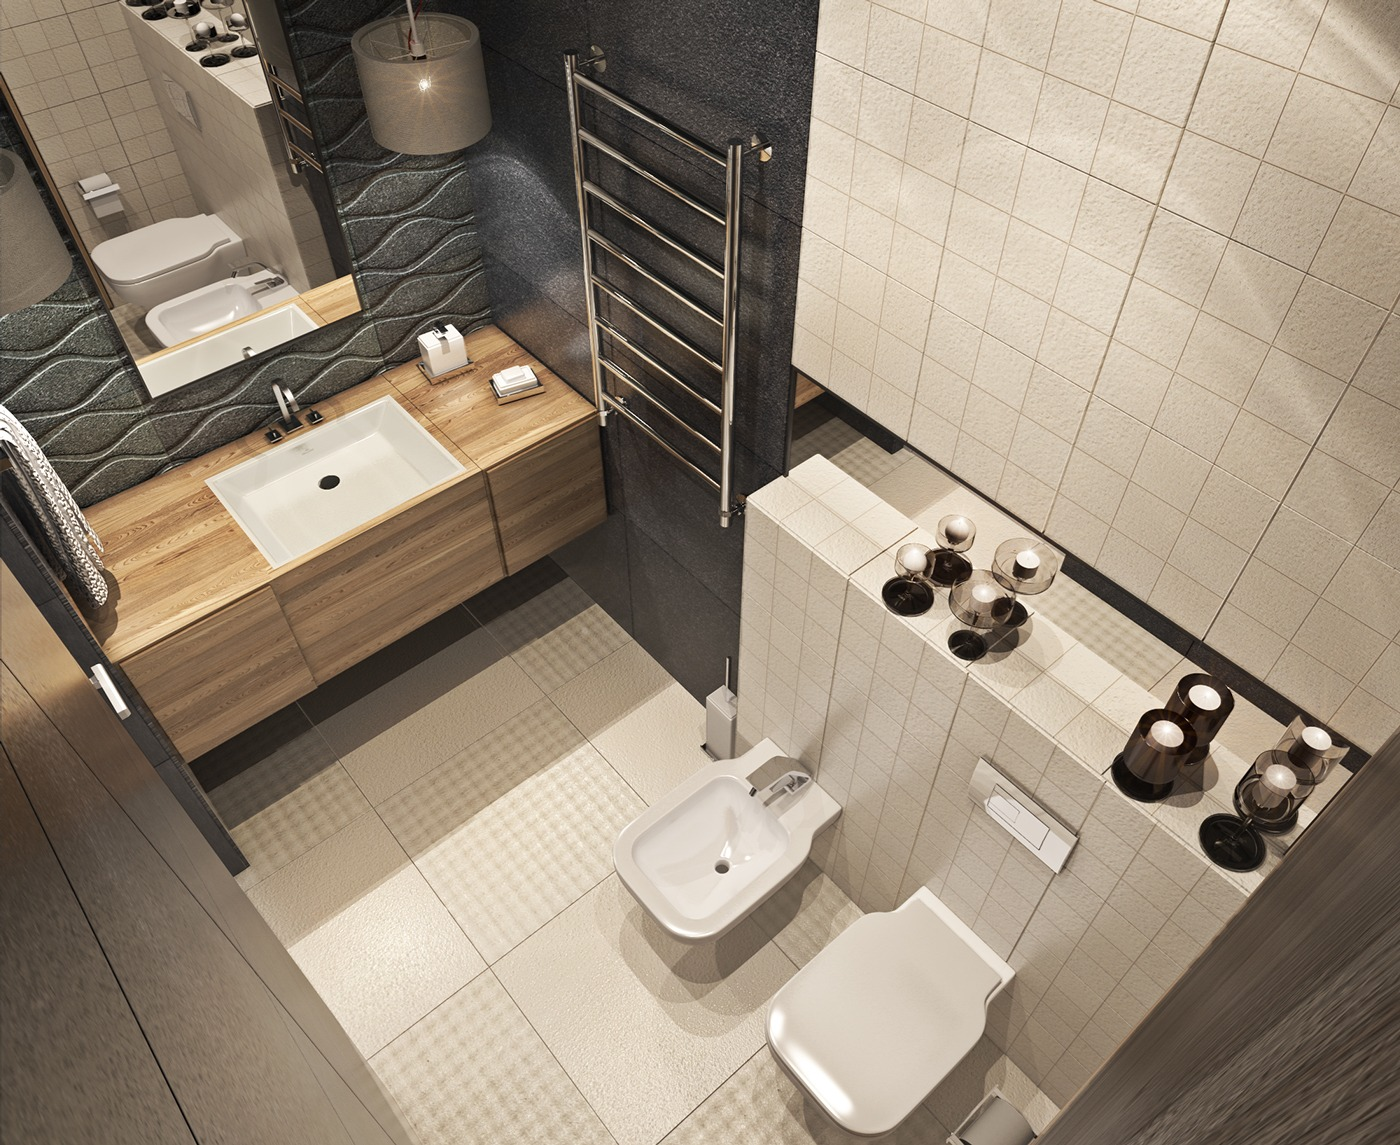 White Tile Bath - A contemporary apartment with lots of open space